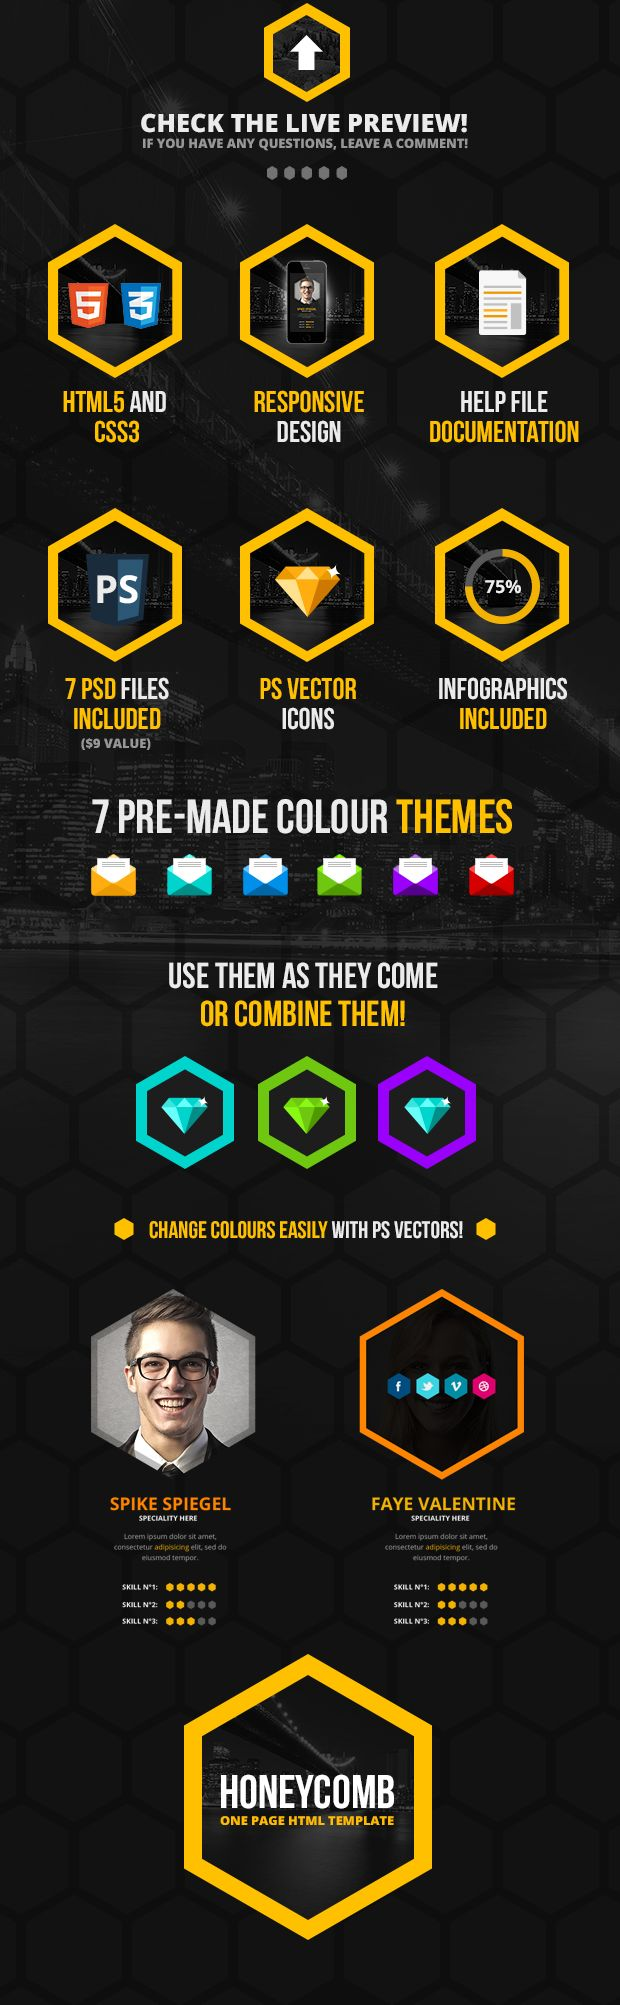 Honeycomb - Responsive One Page HTML5 Template - 7